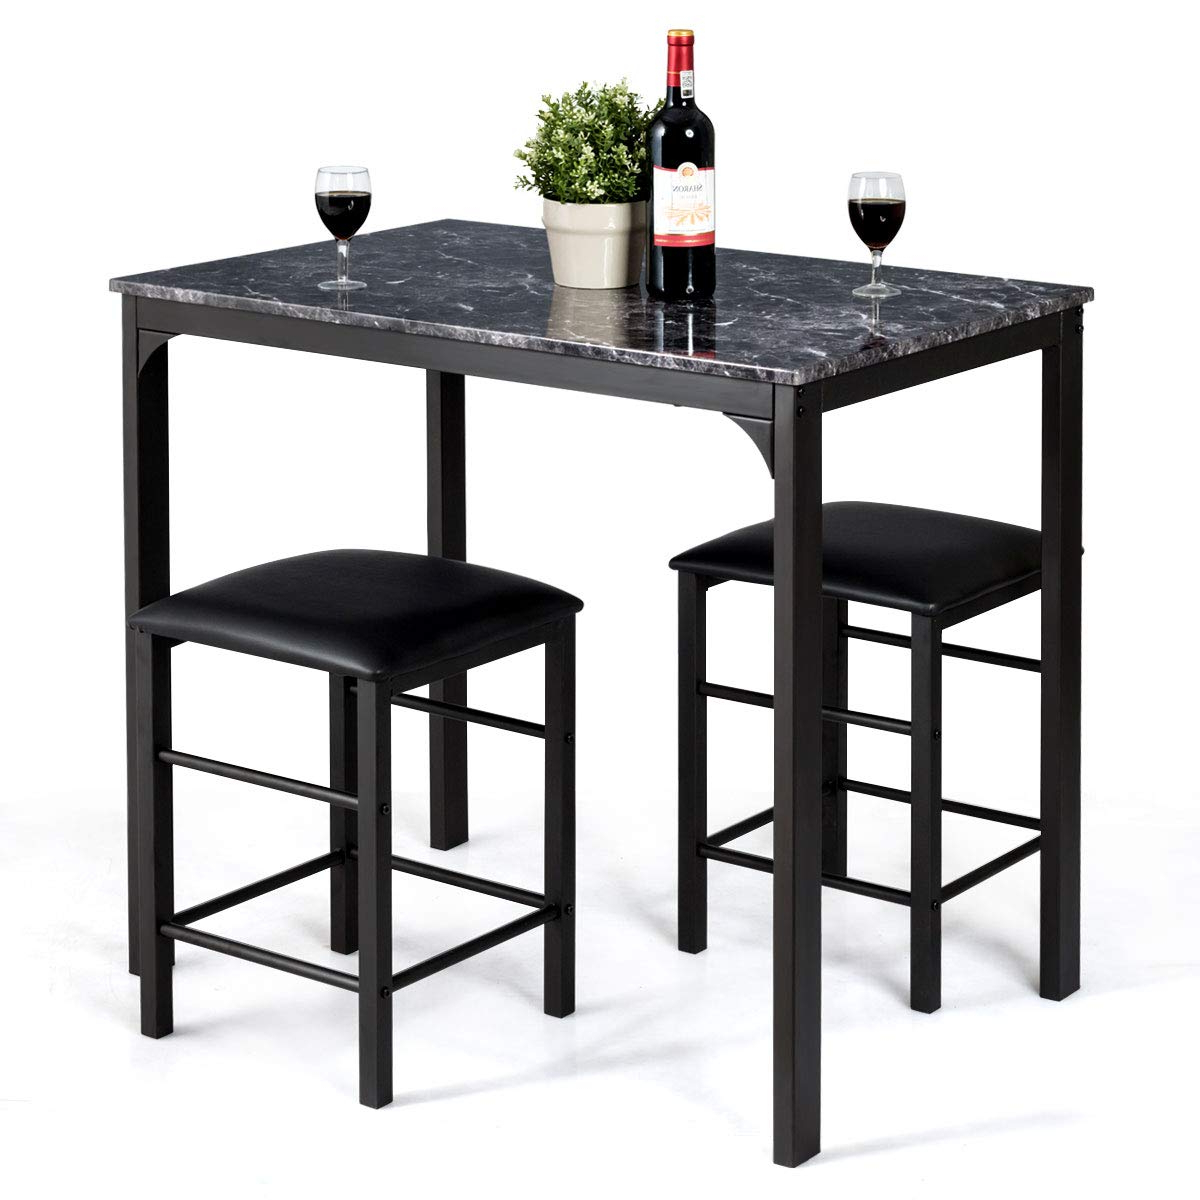 Faux Marble Finish Metal Contemporary Dining Tables Intended For Fashionable Giantex 3 Pcs Dining Table And Chairs Set With Faux Marble Tabletop 2  Chairs Contemporary Dining Table Set For Home Or Hotel Dining Room, Kitchen  Or (View 7 of 25)